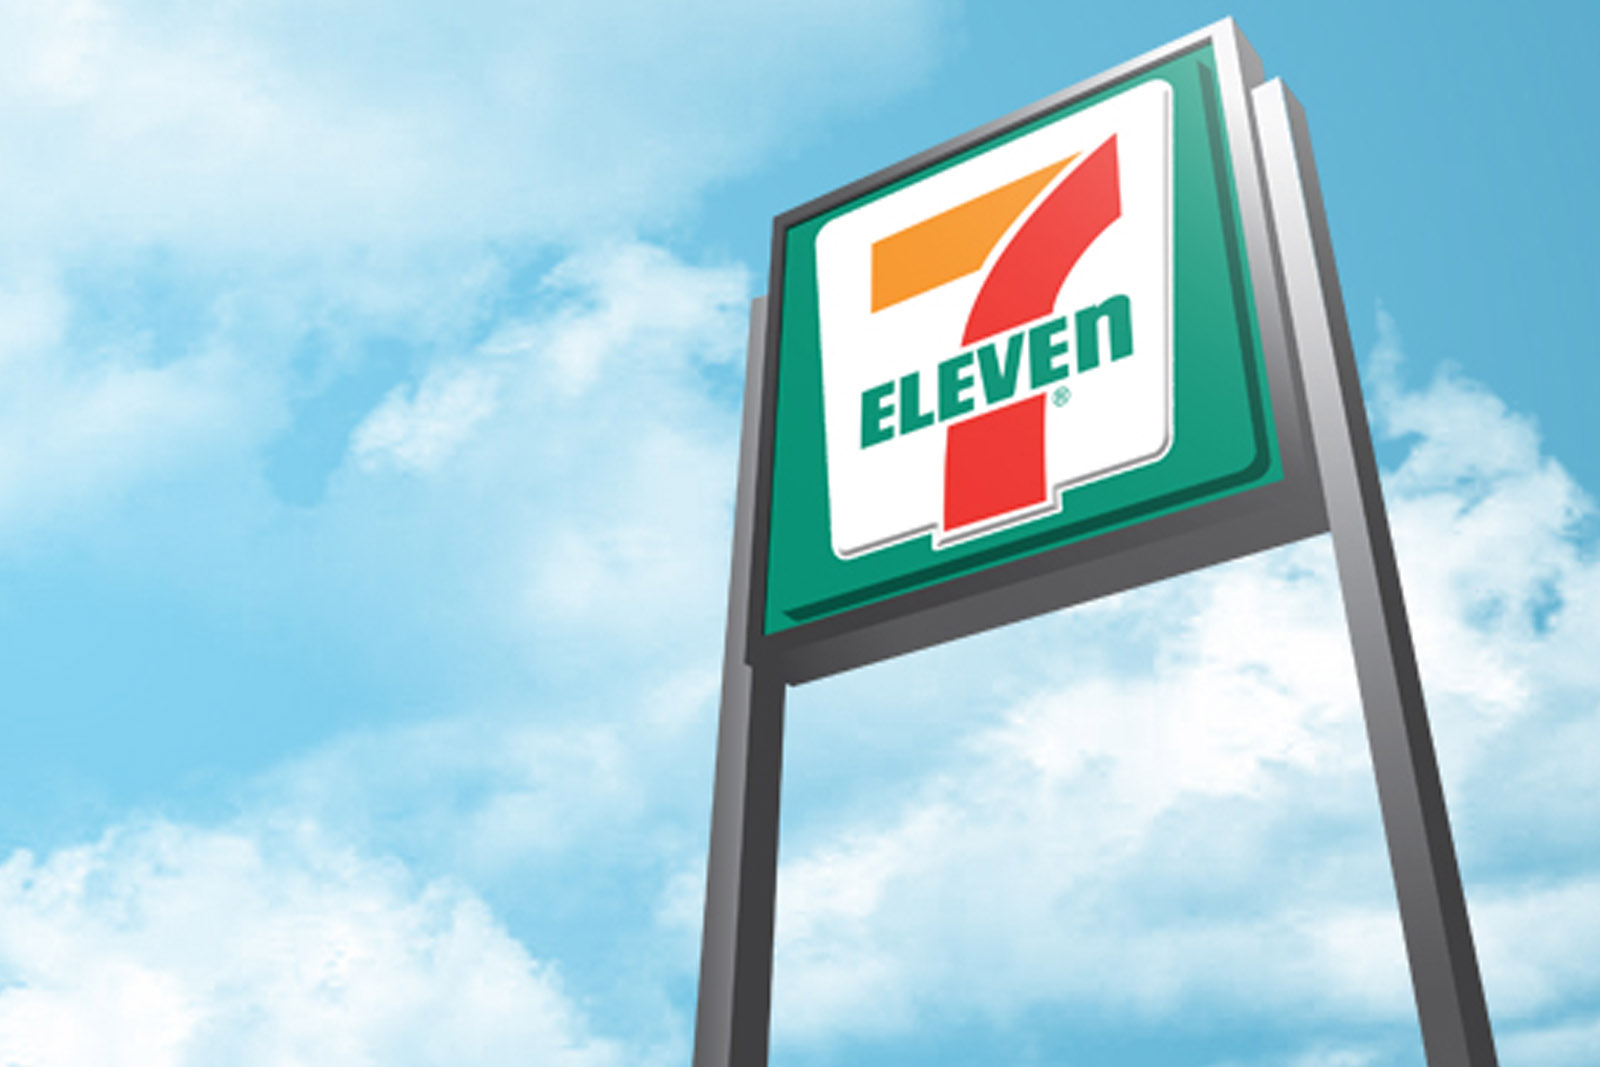 7-11 stores